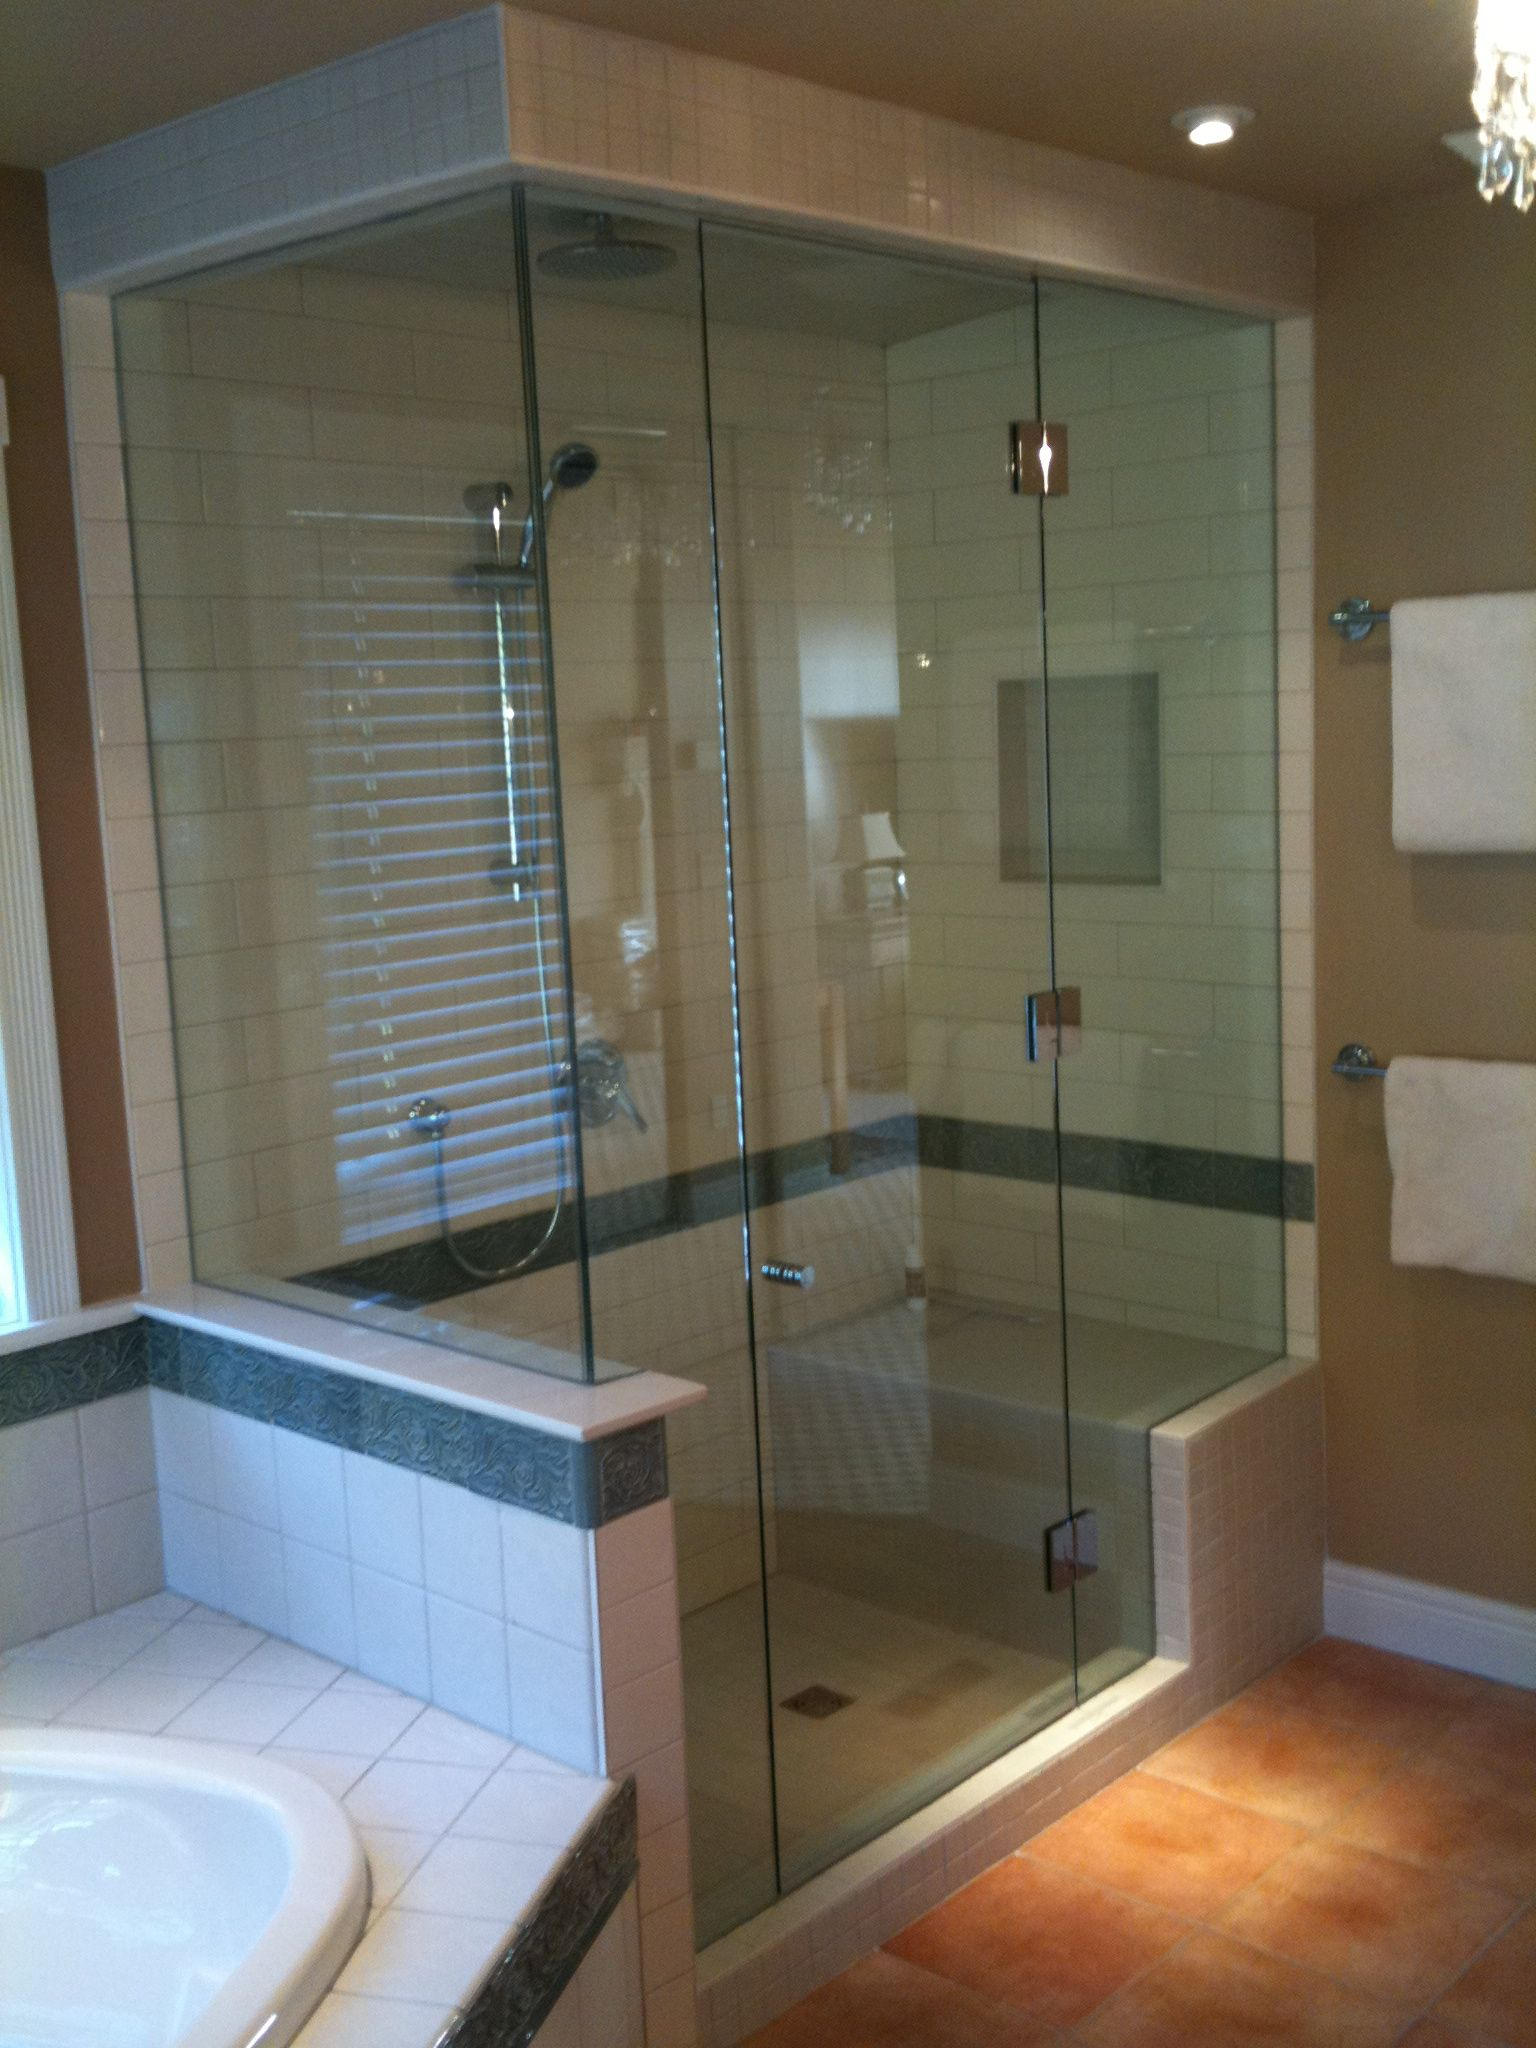 Shower Renovation the following bathroom renovation tips will help you to build the